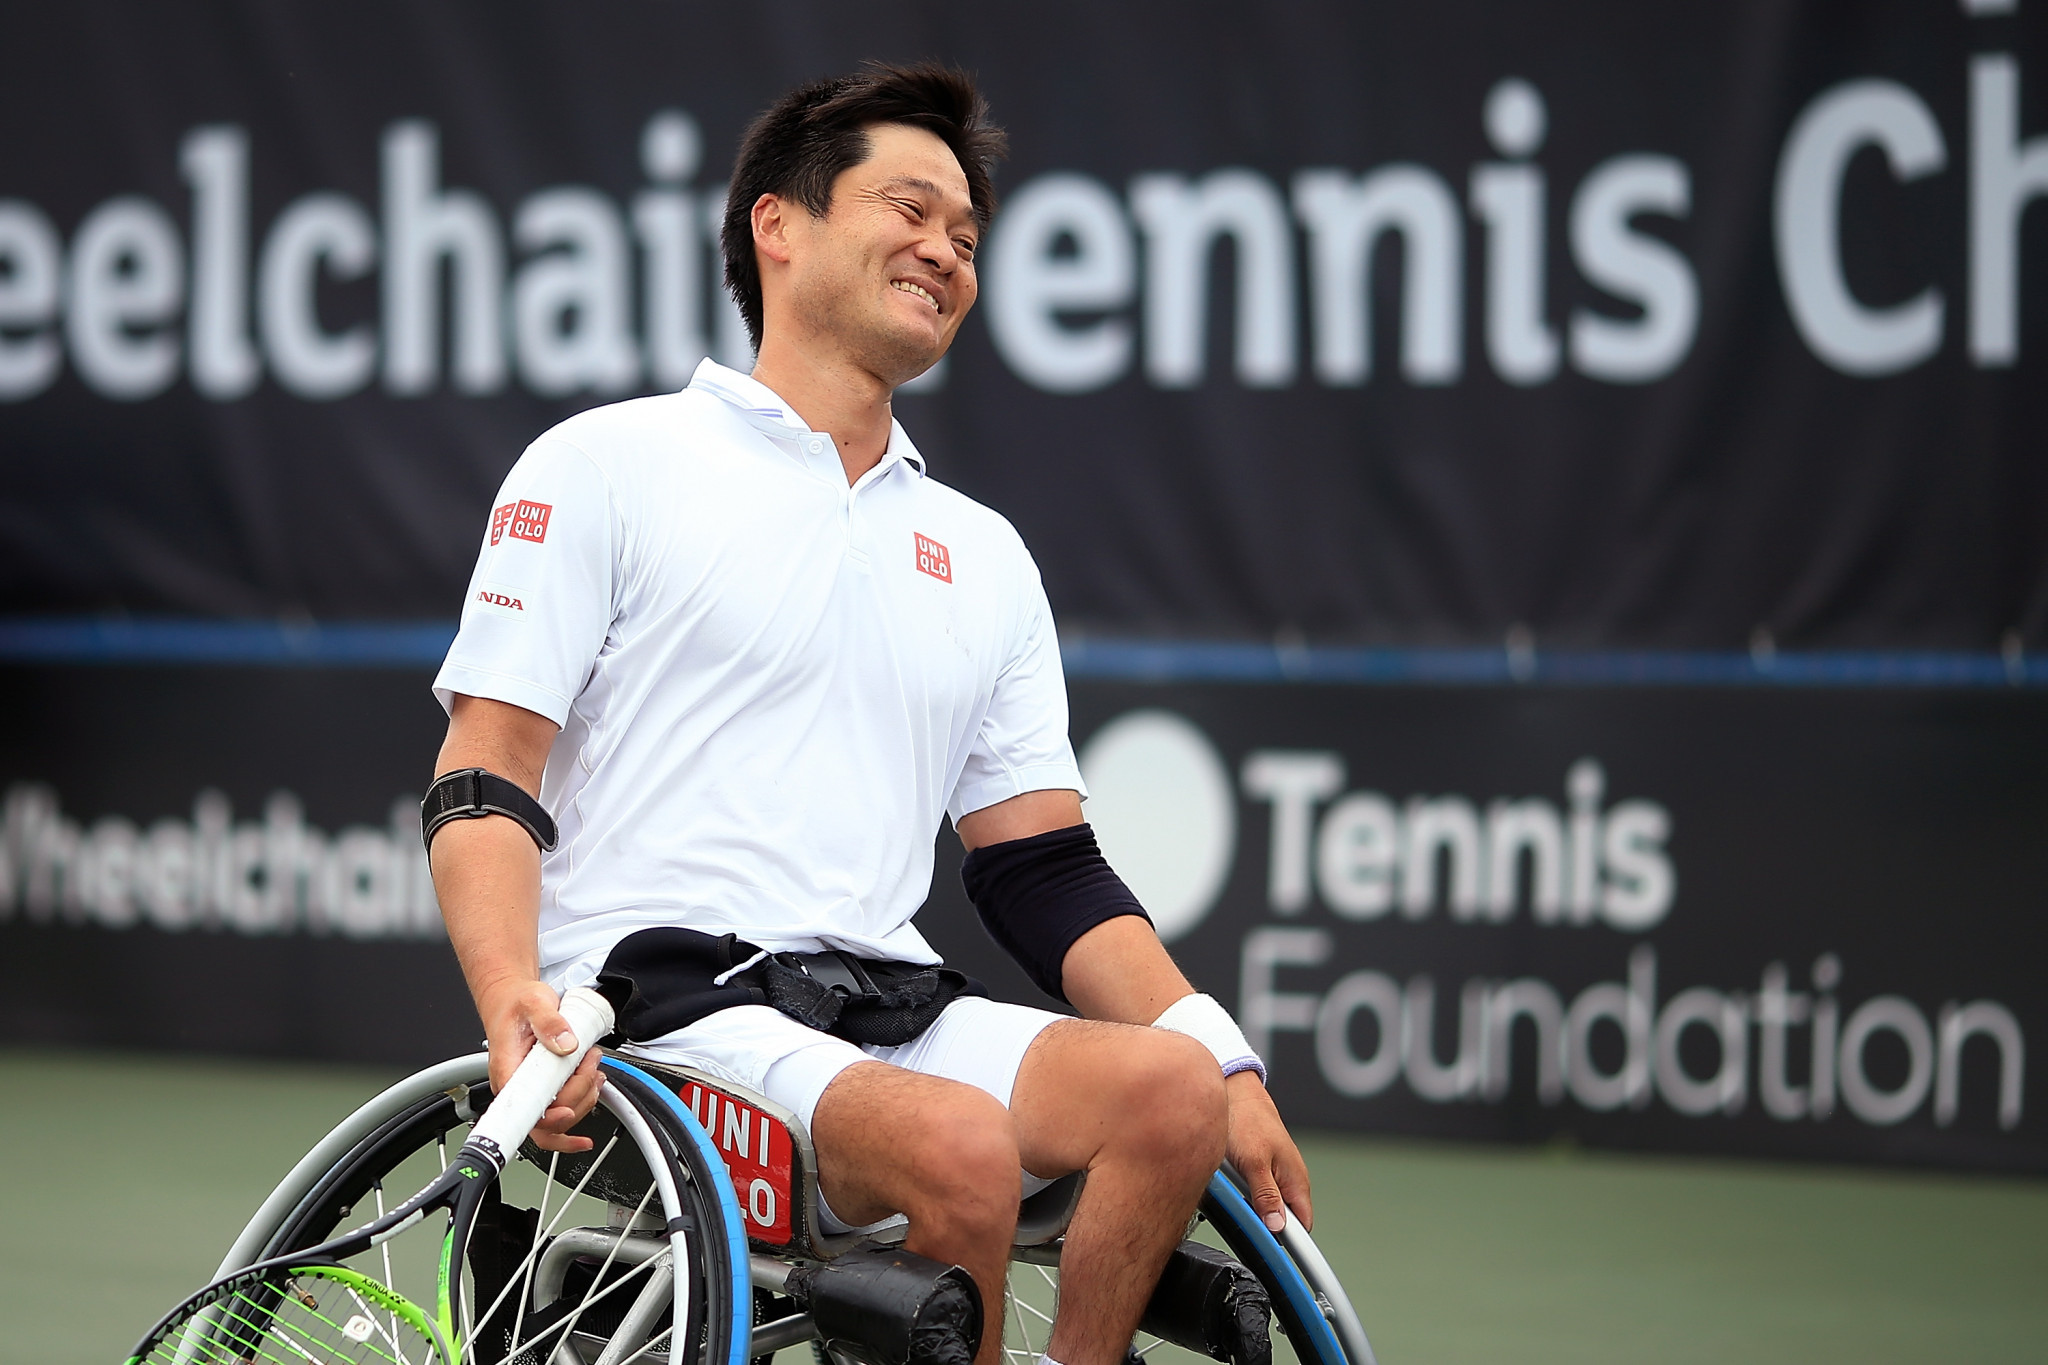 Kunieda reaches final of Wheelchair Tennis Masters in Orlando